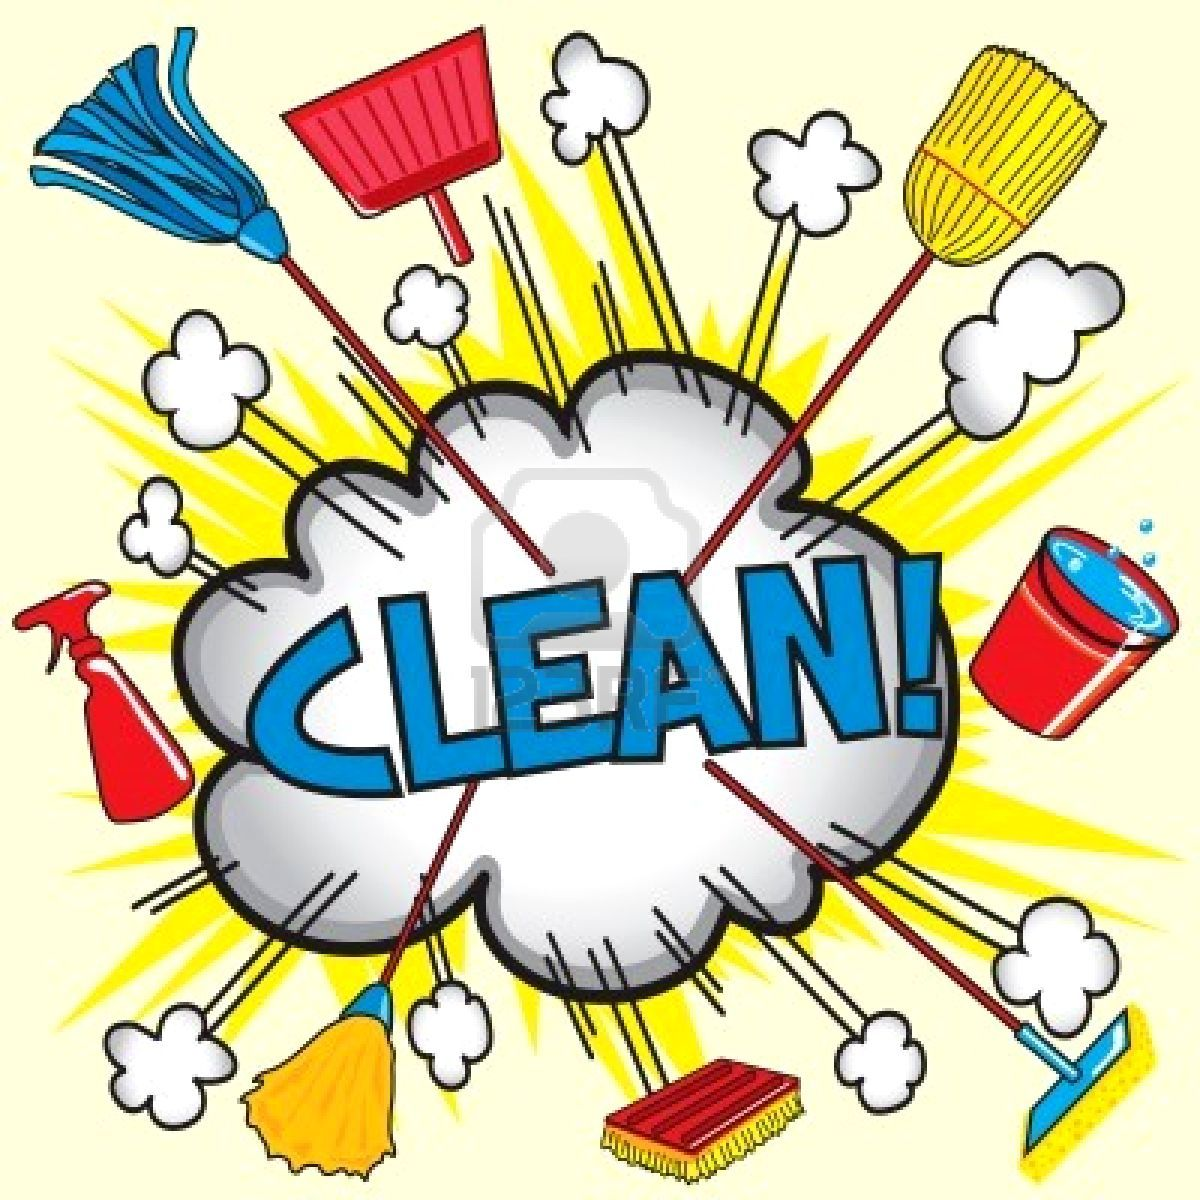 house cleaning clipart at getdrawings com free for personal use rh getdrawings com clean up clipart images clean up toys clipart